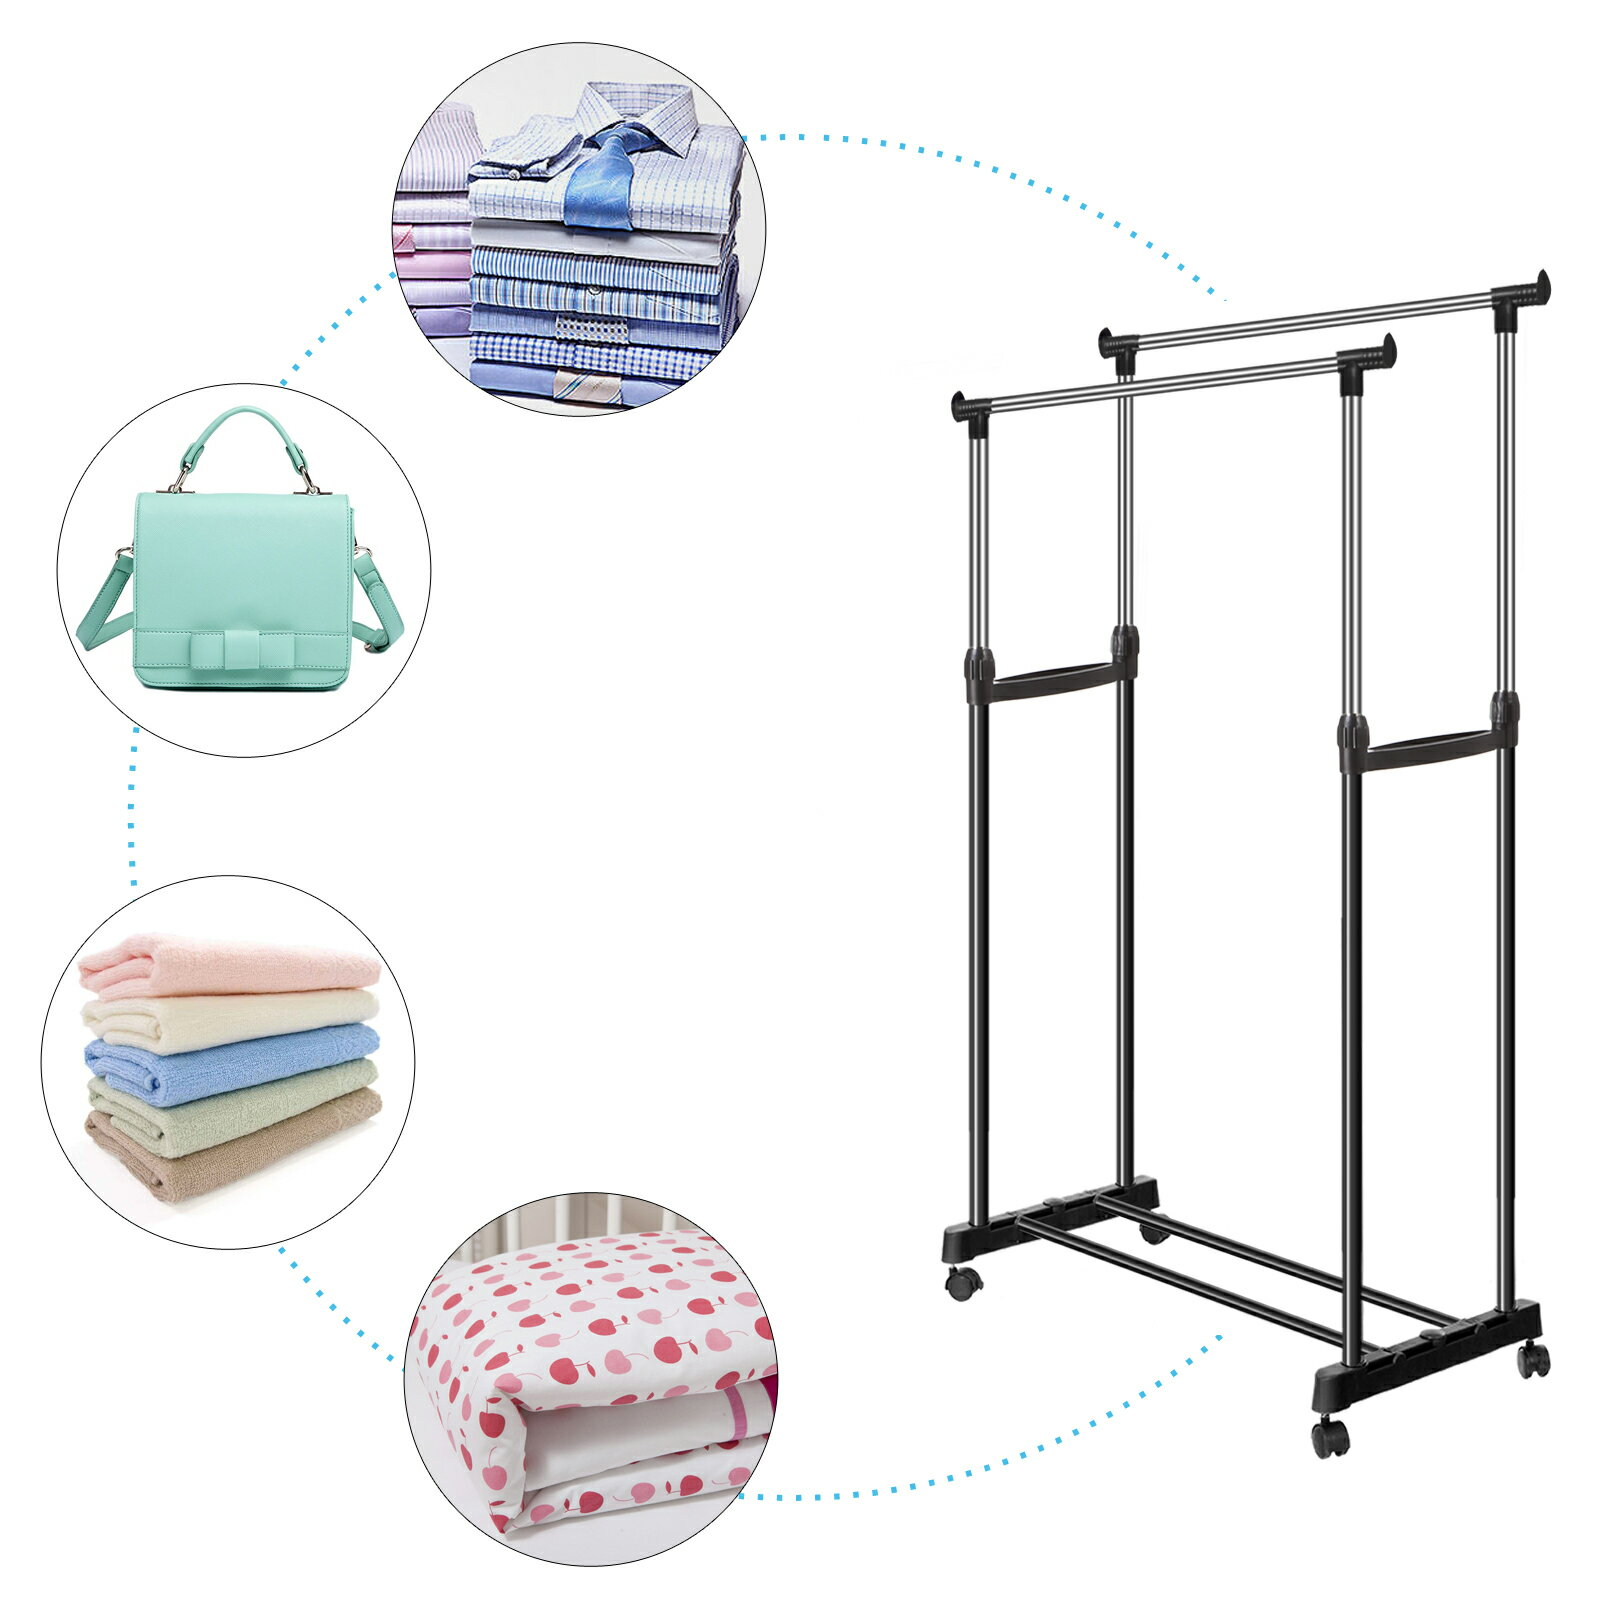 Clothes Garment Drying Hanging Racks 5